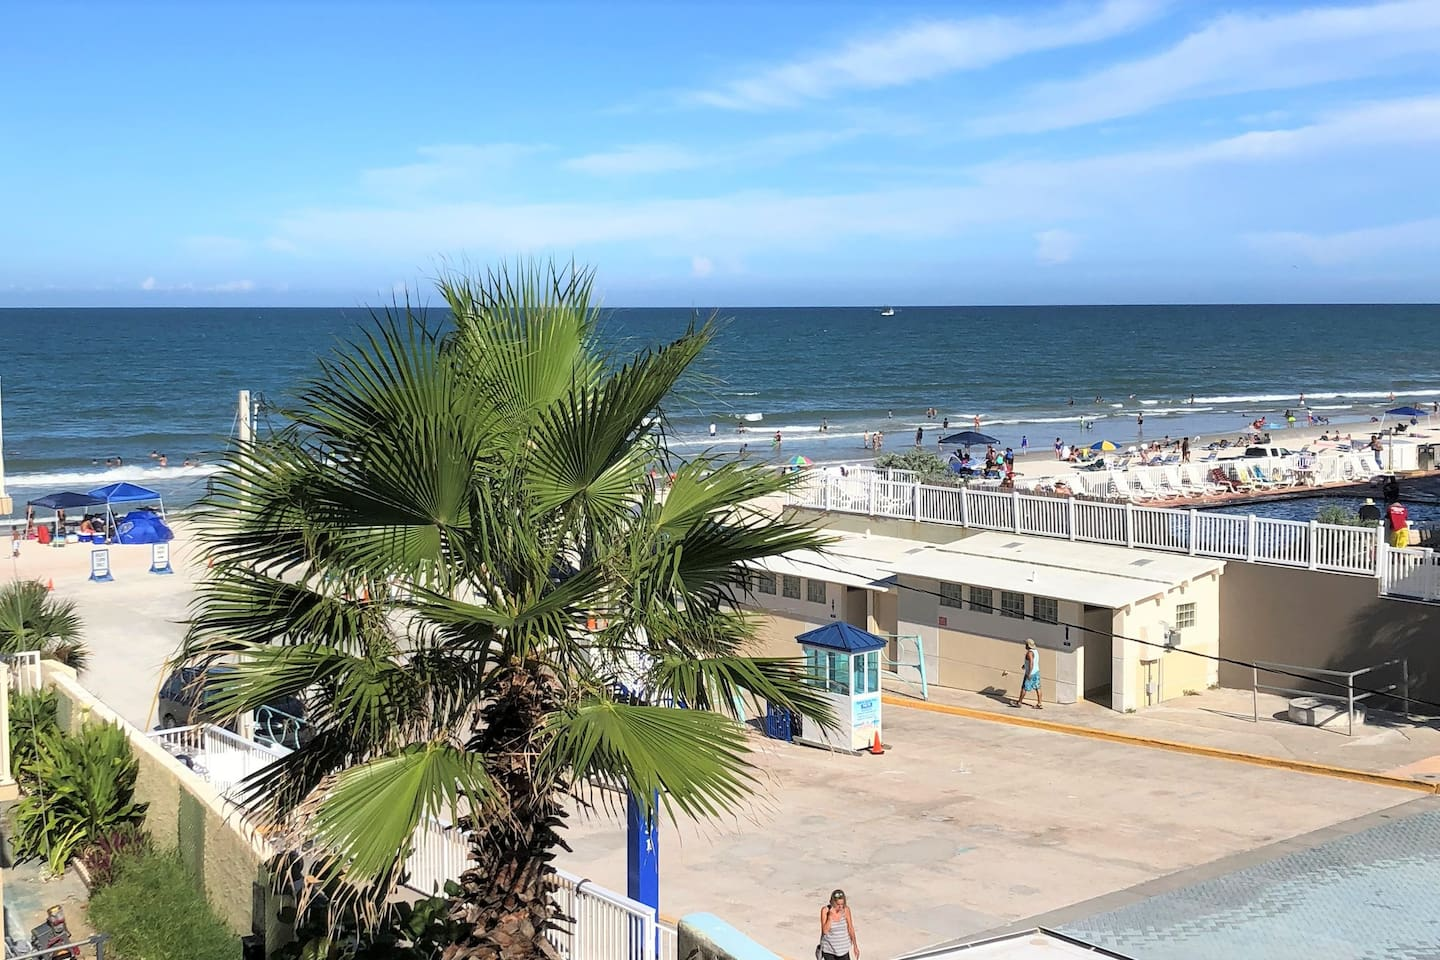 Ocean view studio! This is an actual photo from the balcony of the unit!